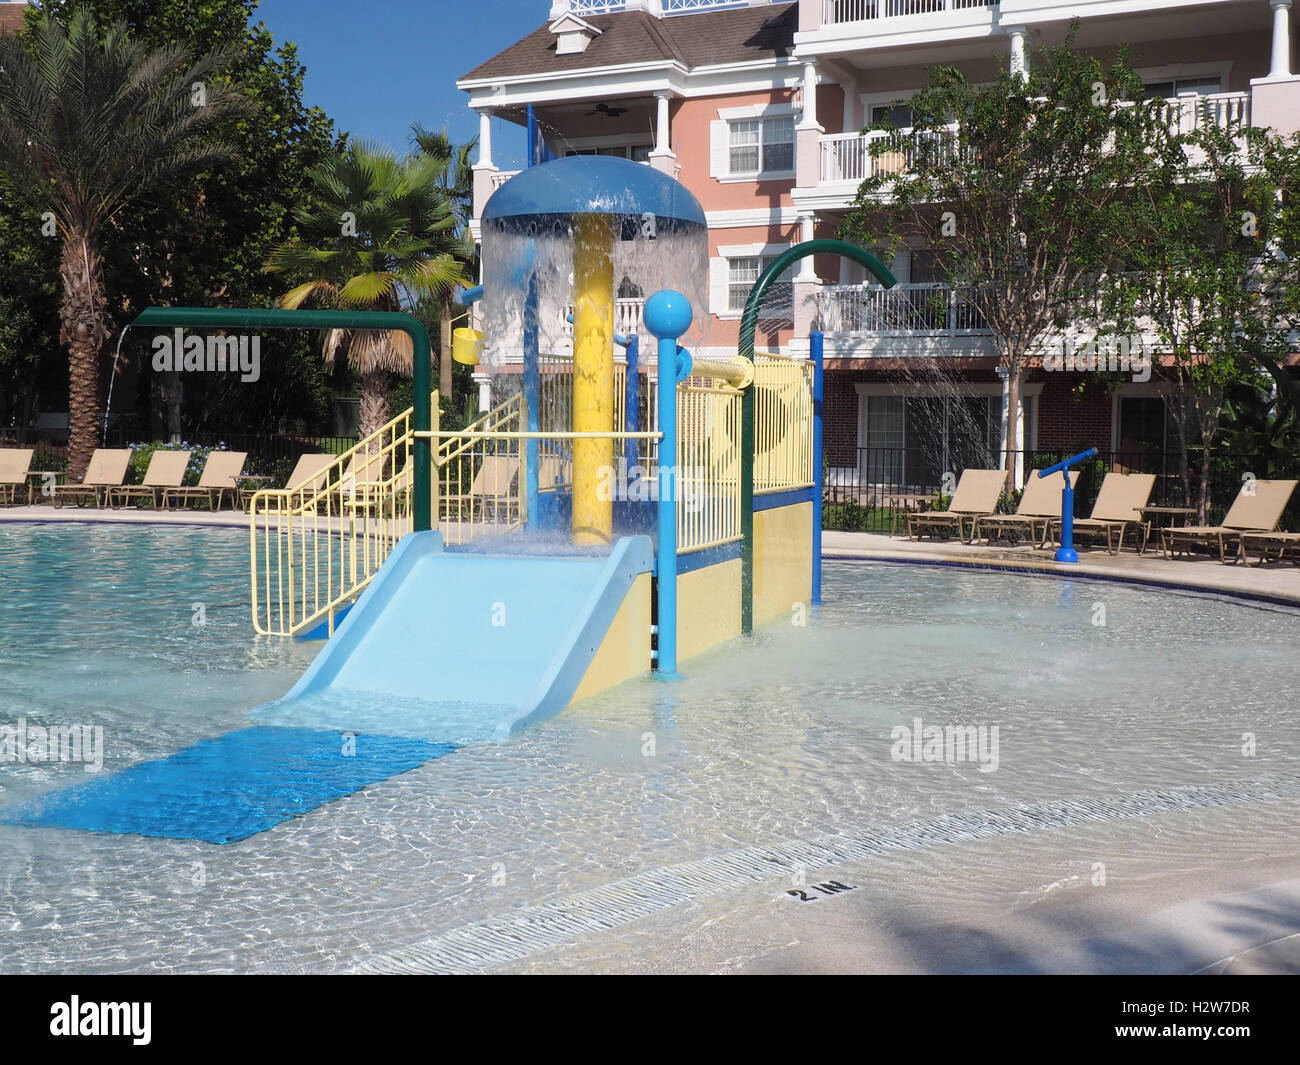 slide and climbing equipment in a kids pool.  The pool is in-ground and surrounded by empty lounge chairs. - Stock Image